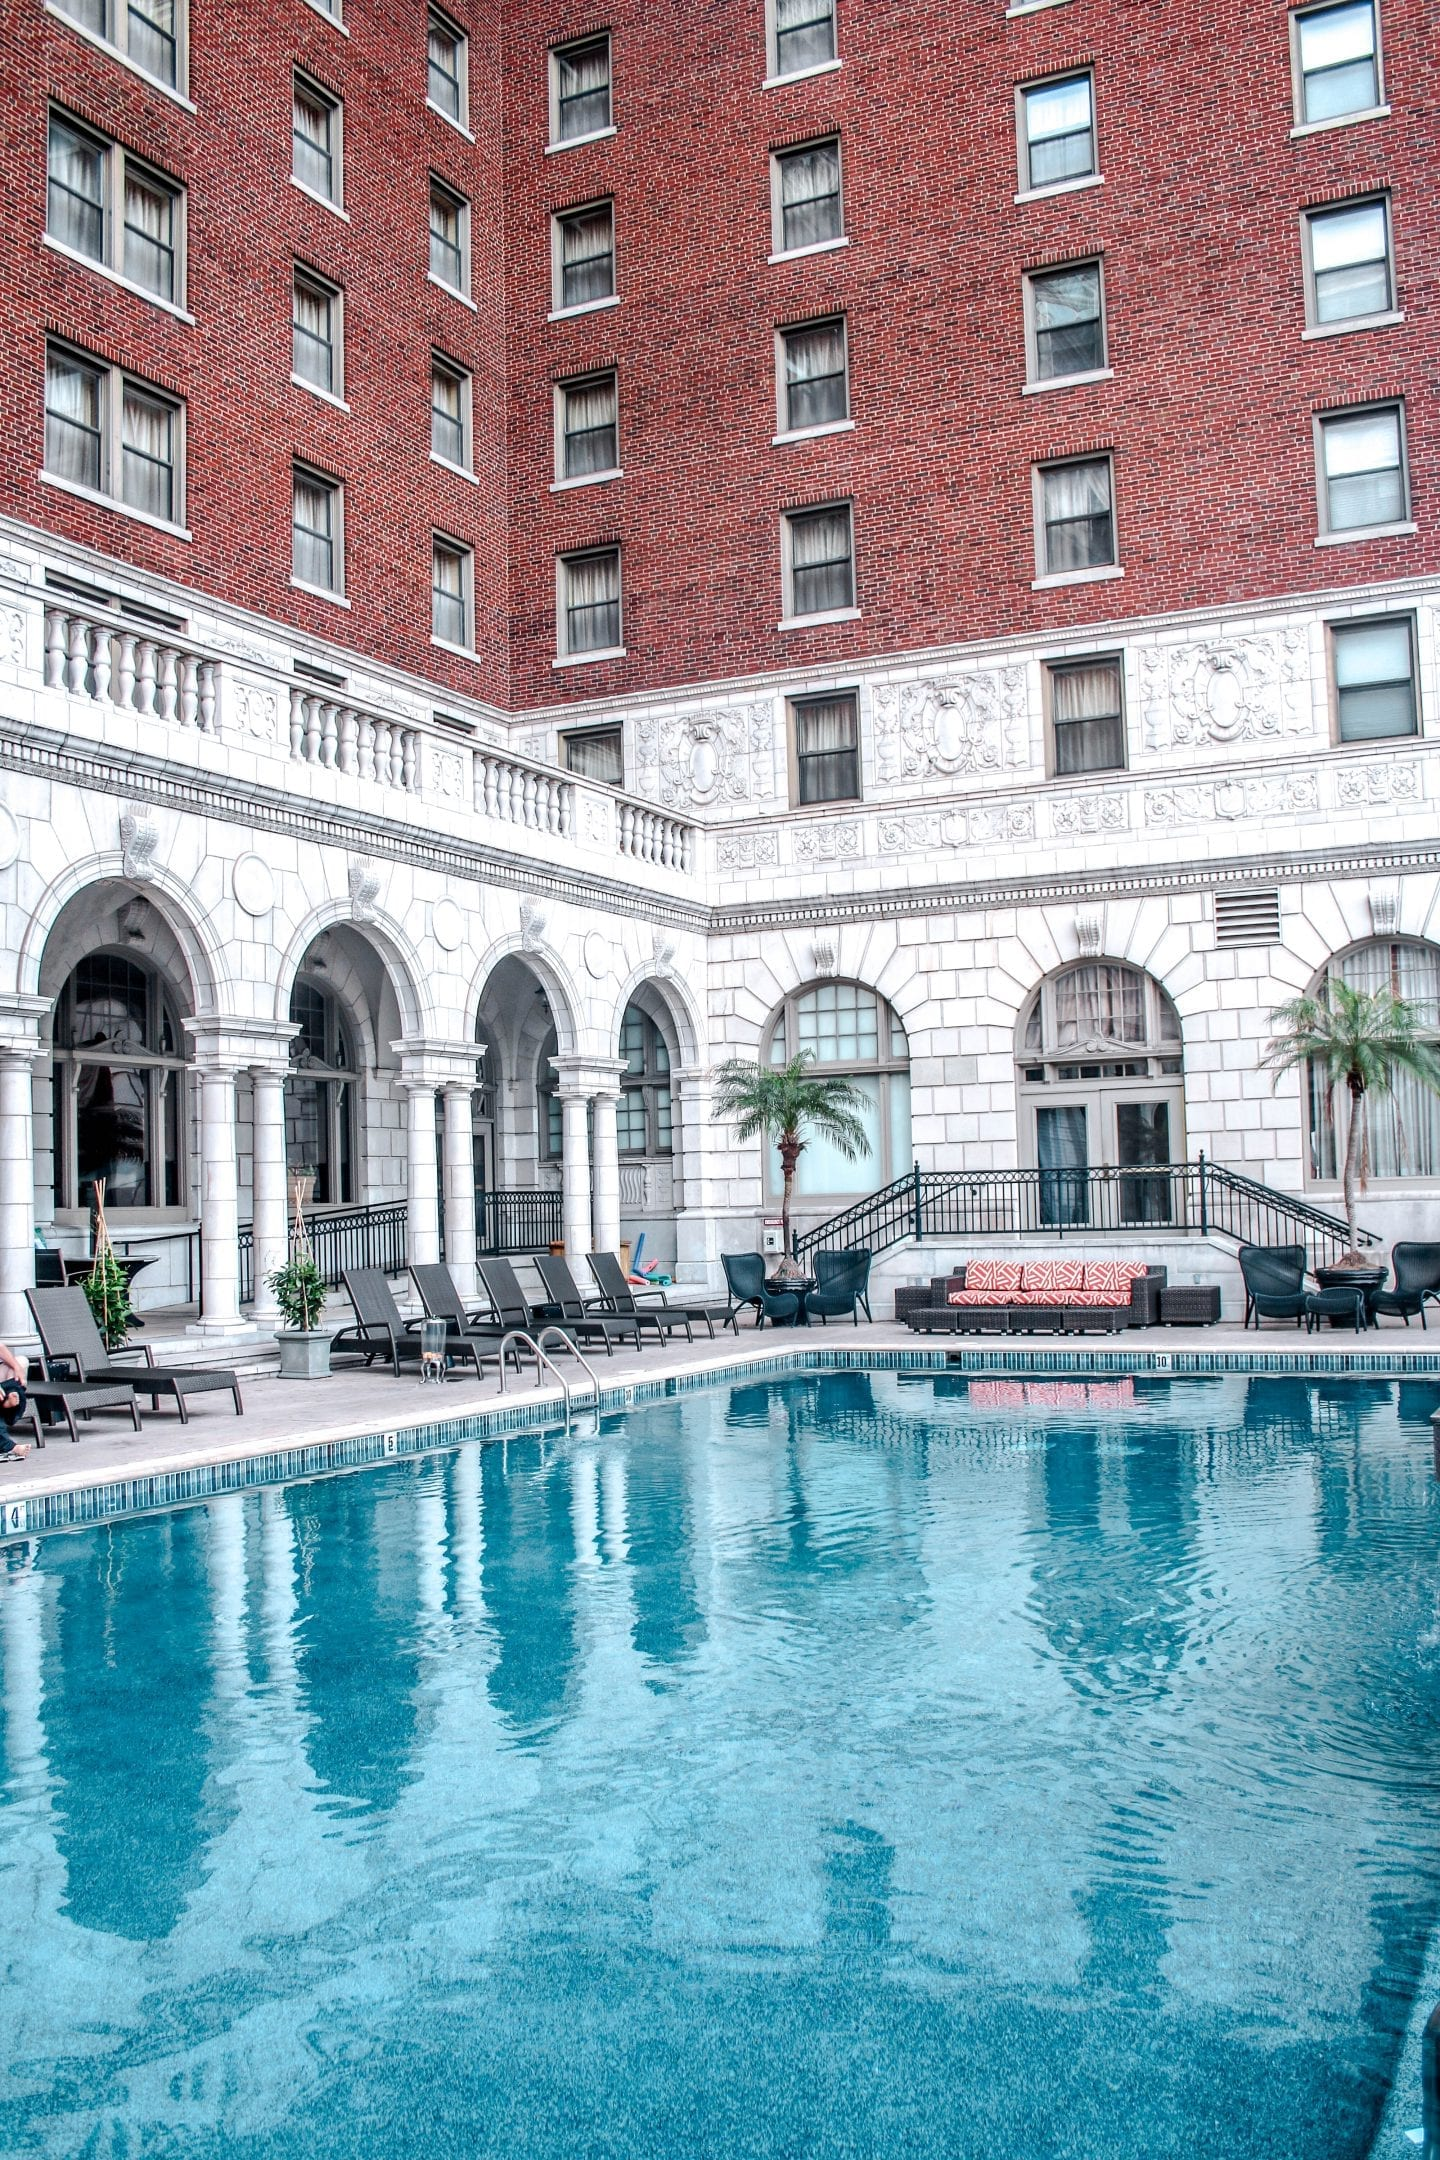 Checking In: The Chase Park Plaza St. Louis